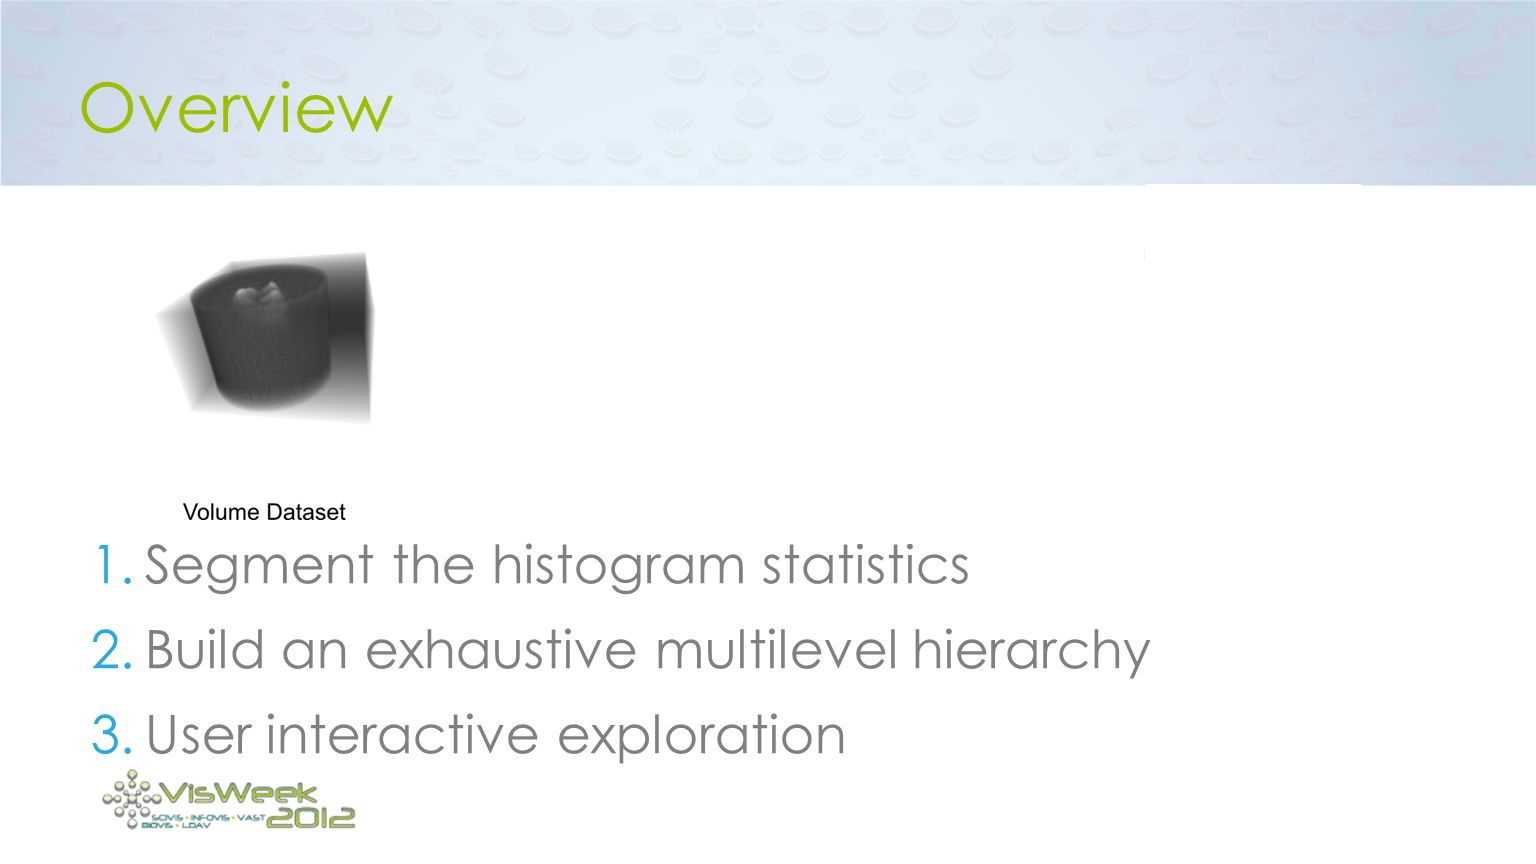 Overview Segment the histogram statistics